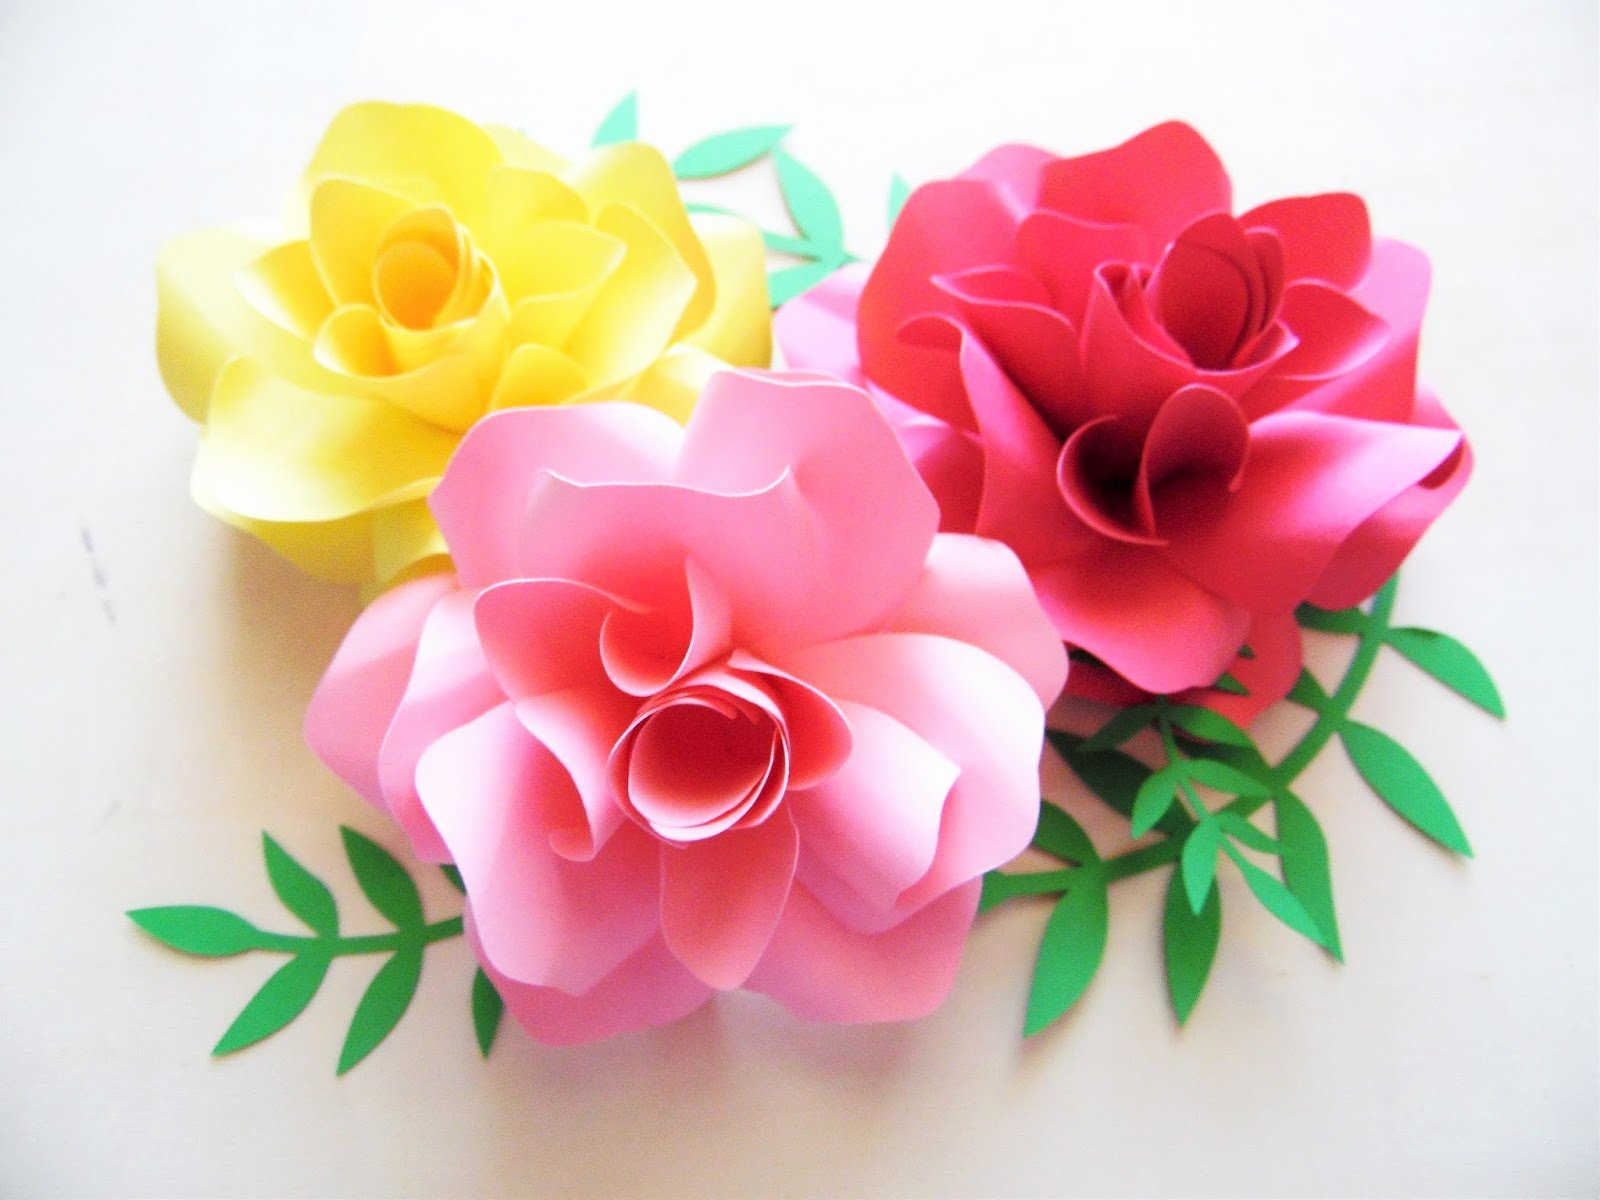 Template for Paper Flowers Inspirational How to Make Diy Paper Roses